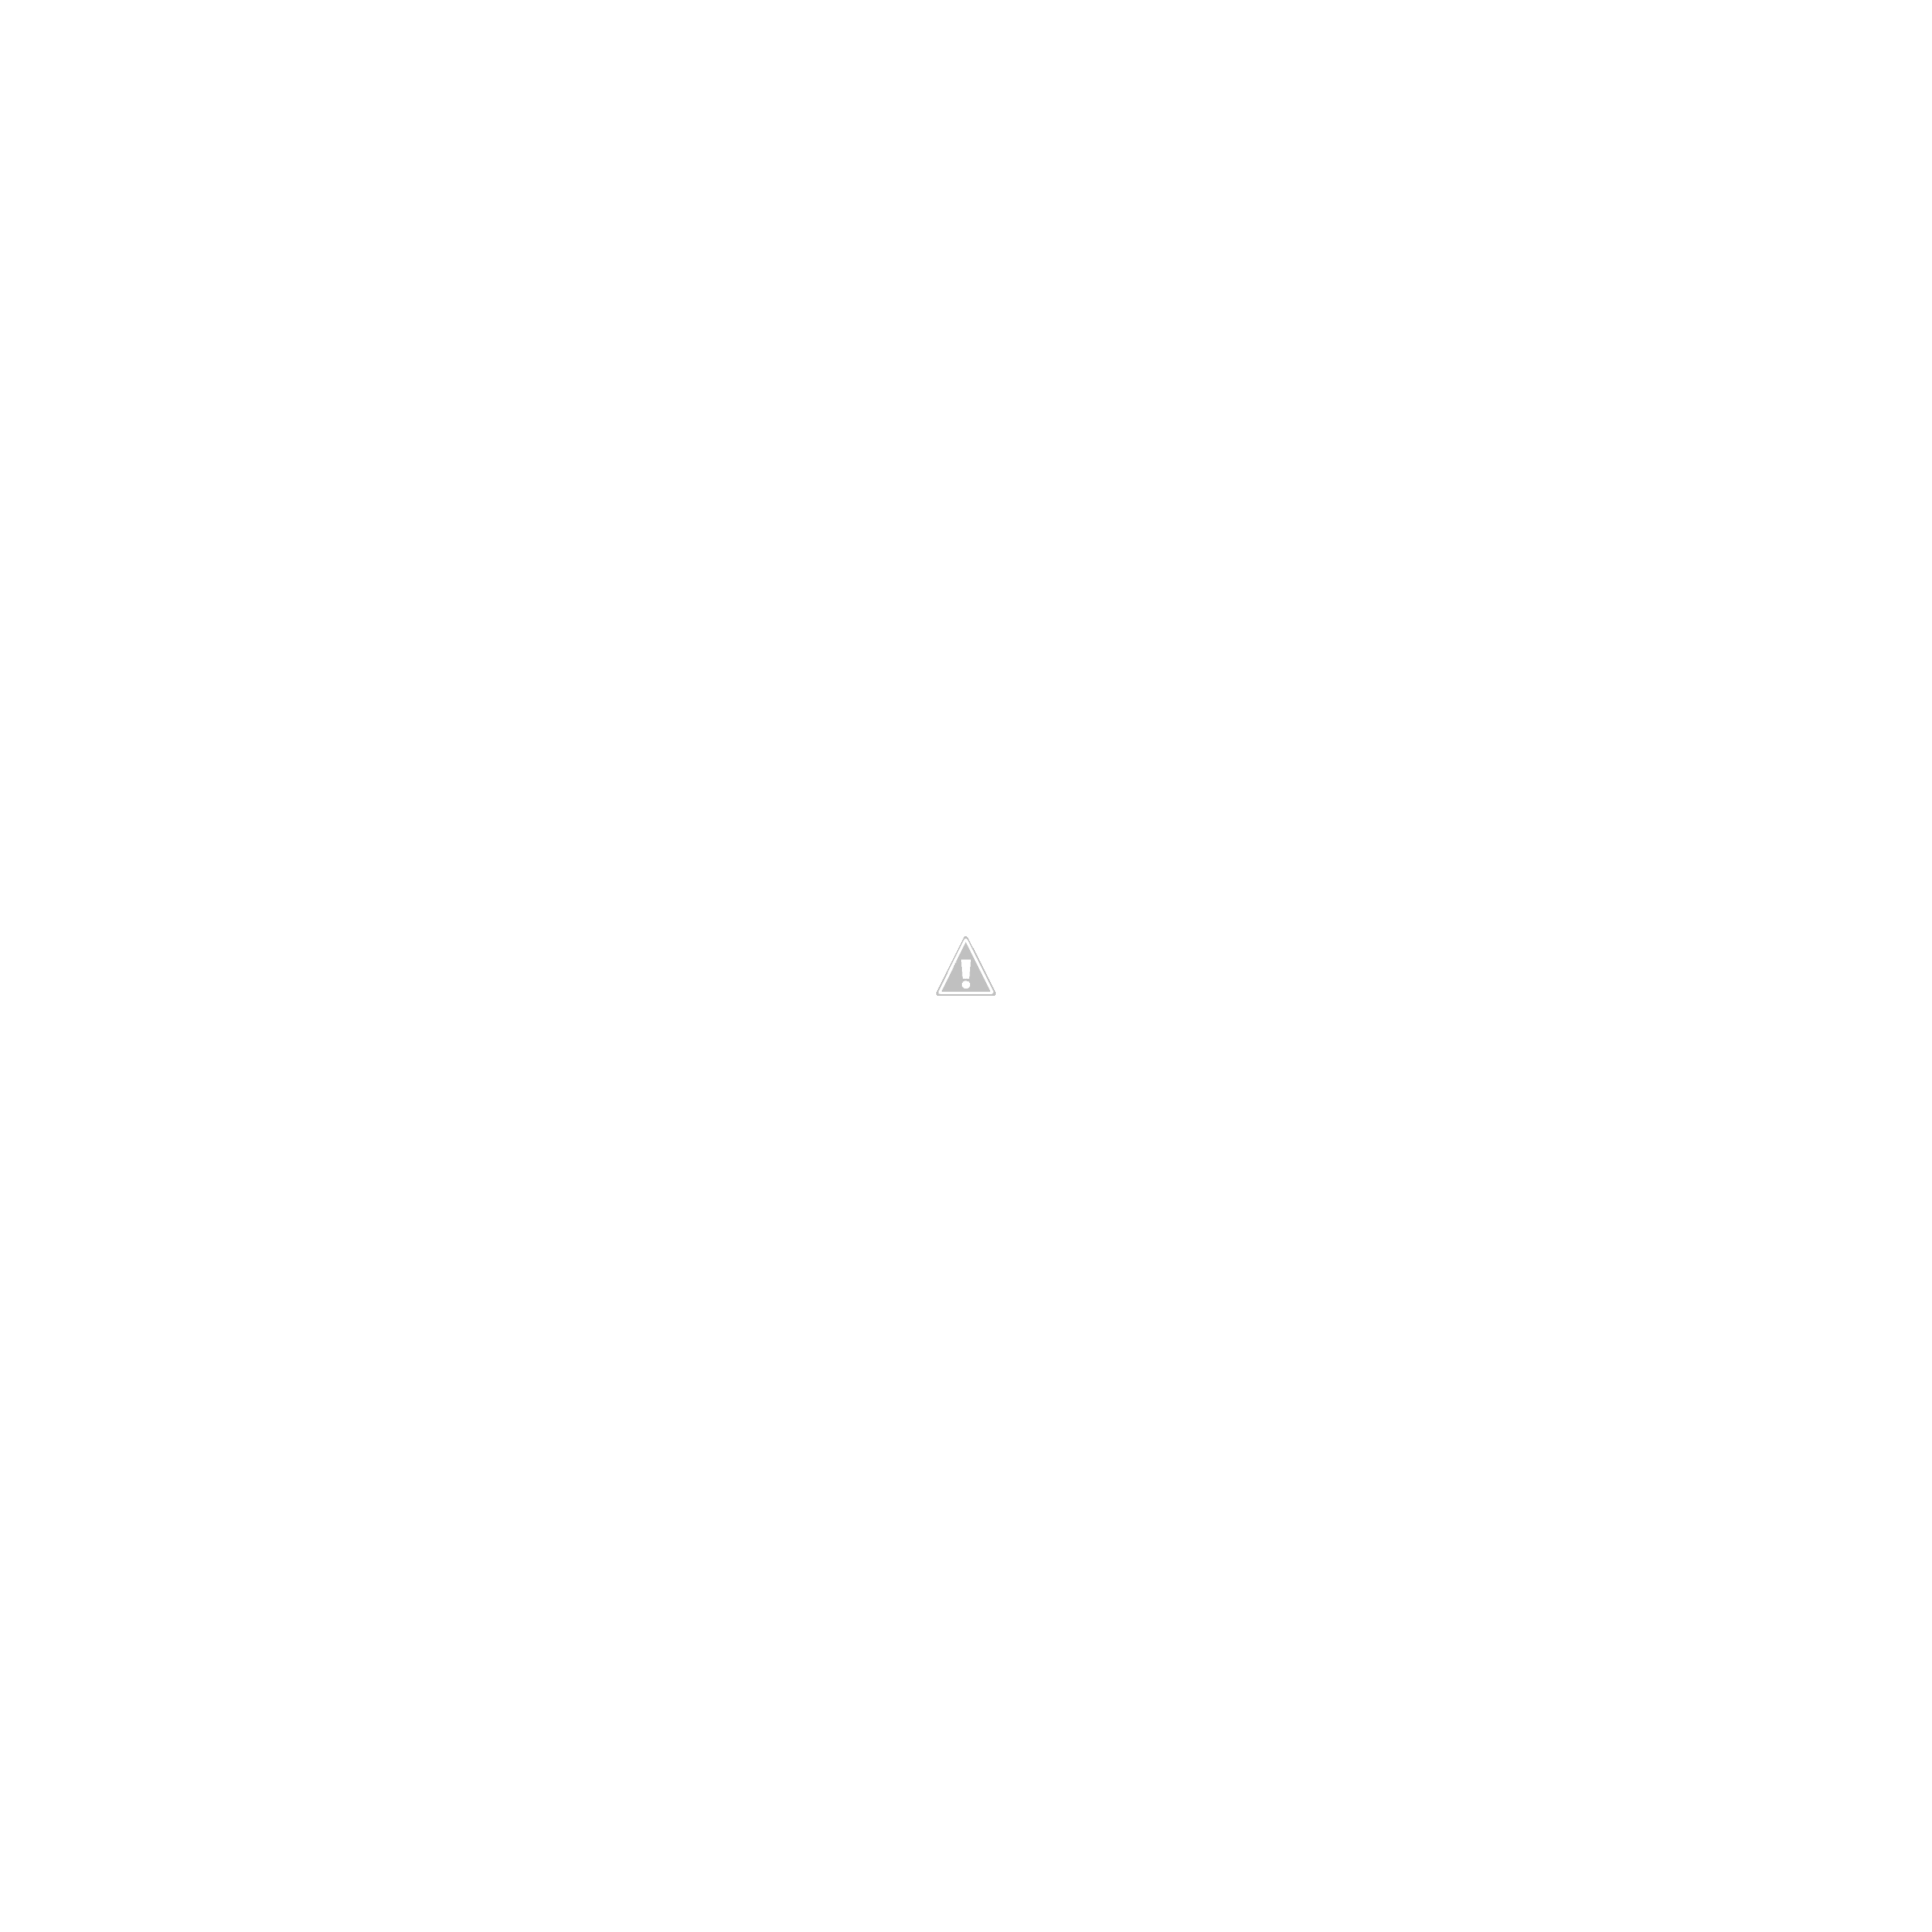 Before the breaker panel replacement in Des Moines